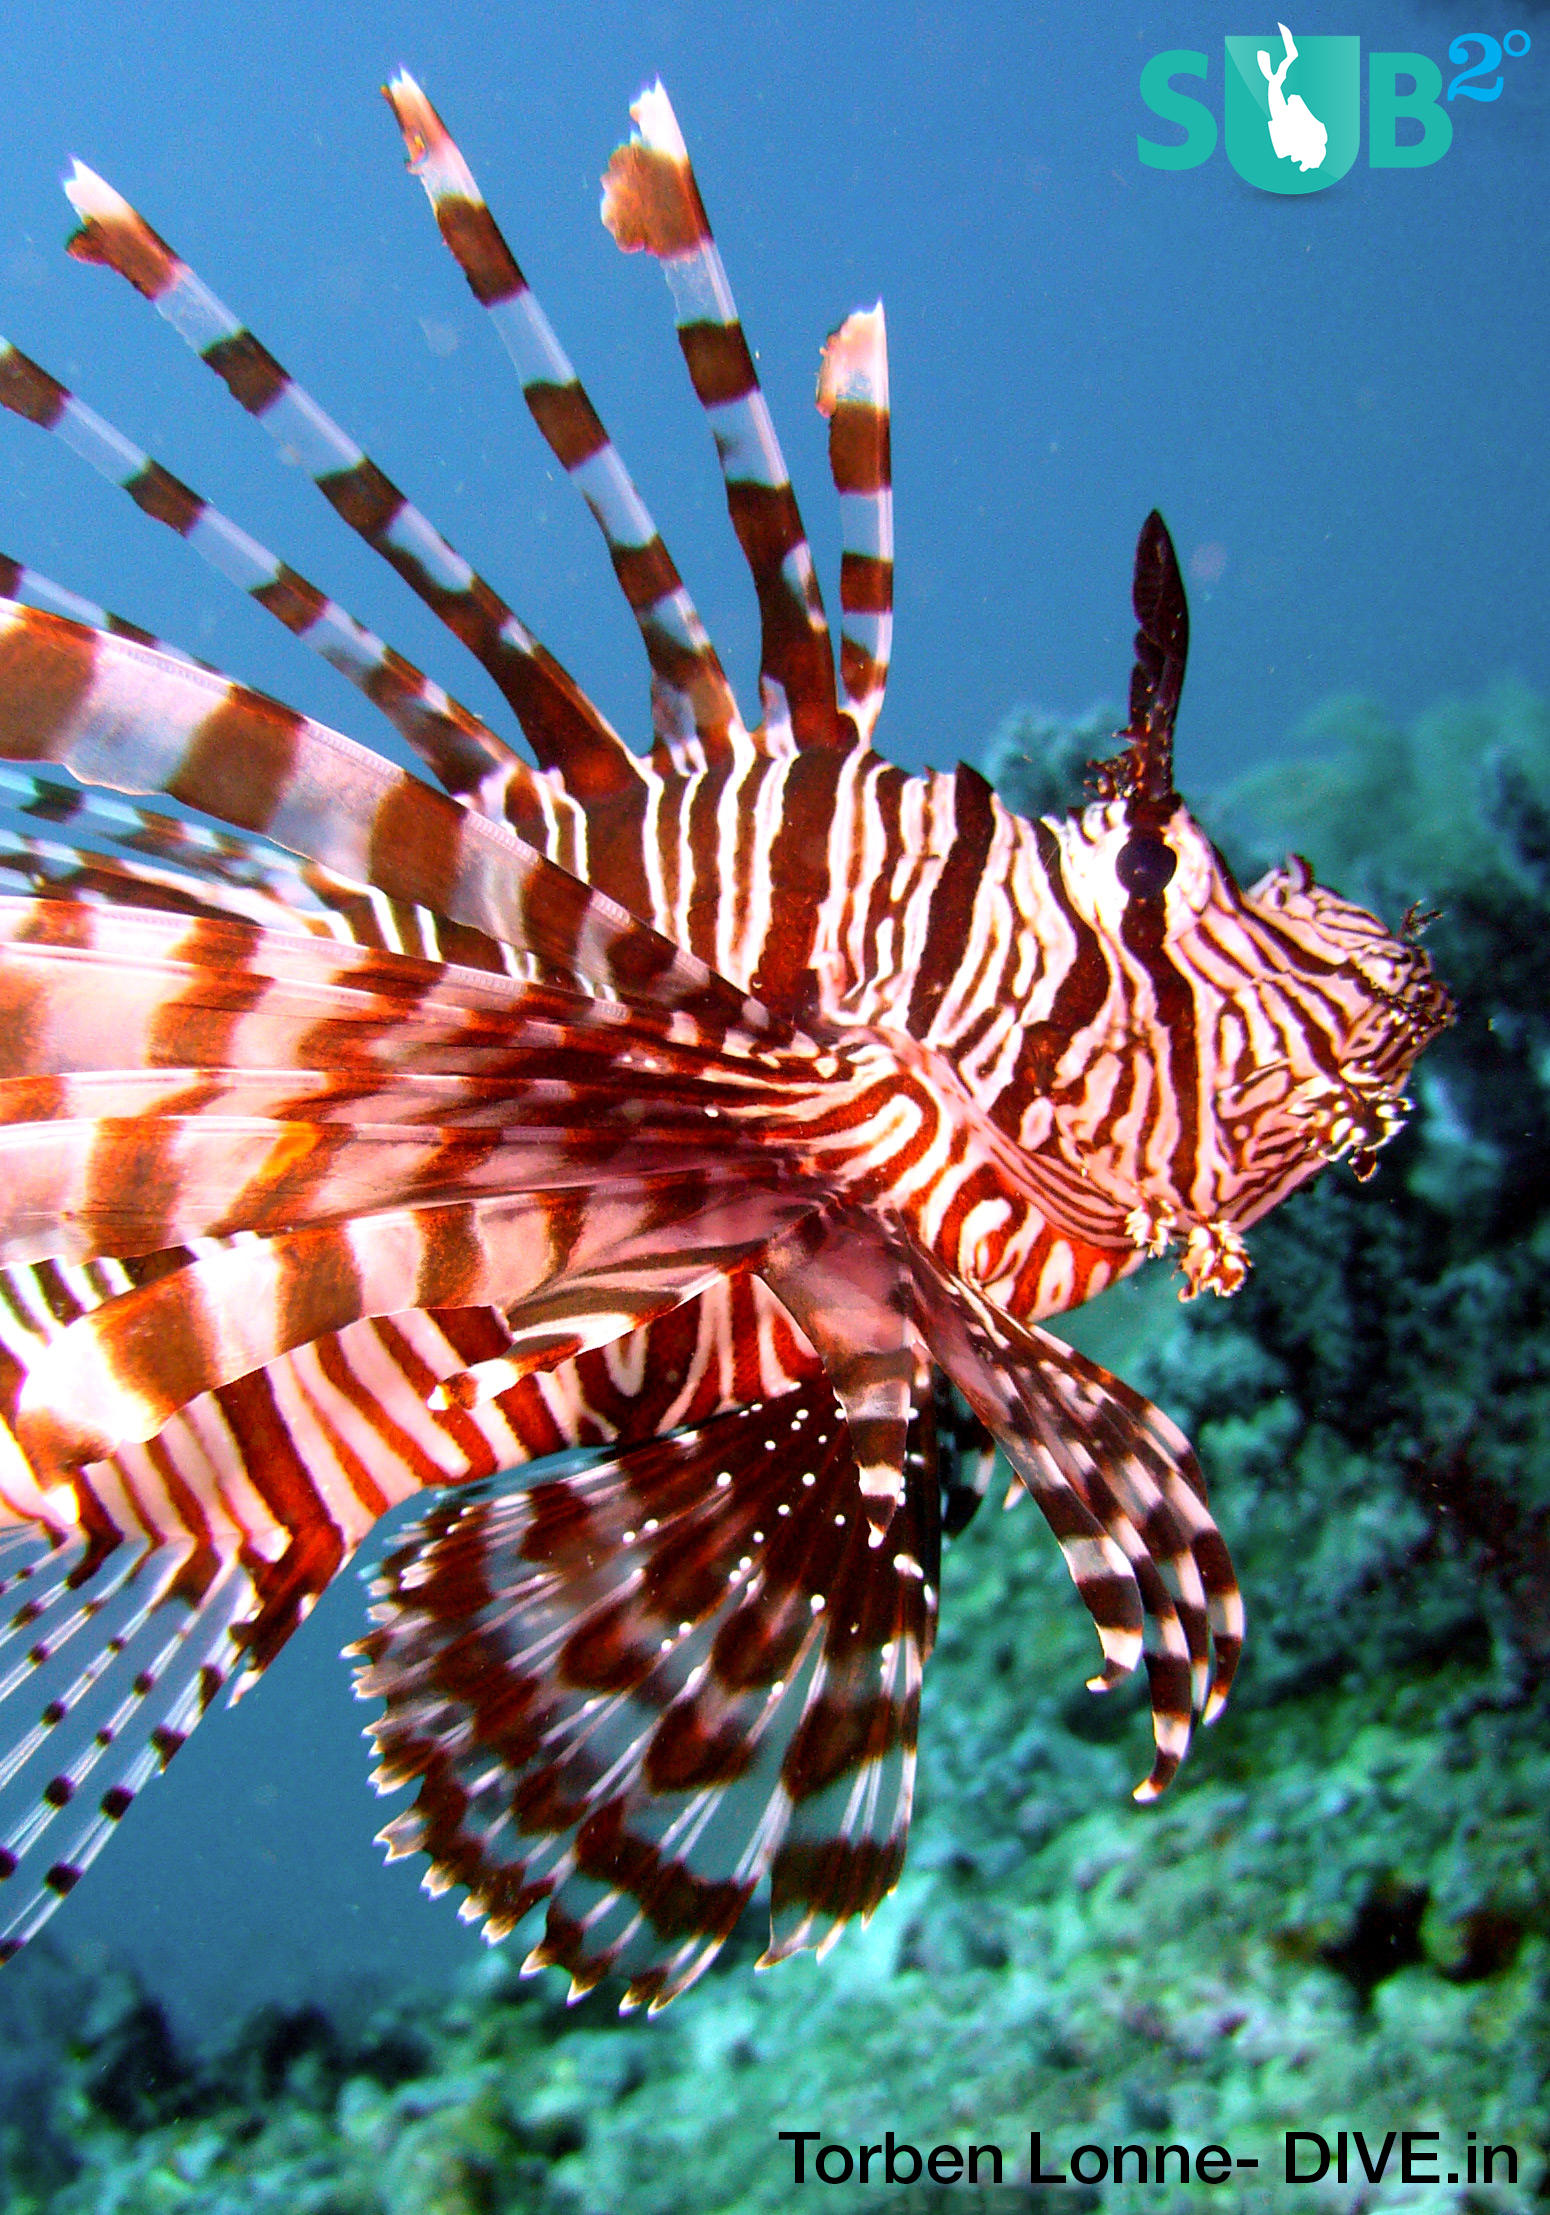 The red lionfish (Pterois volitans), one of the several species of lionfish, is considered to be the most common and the most famous representative of lionfish.